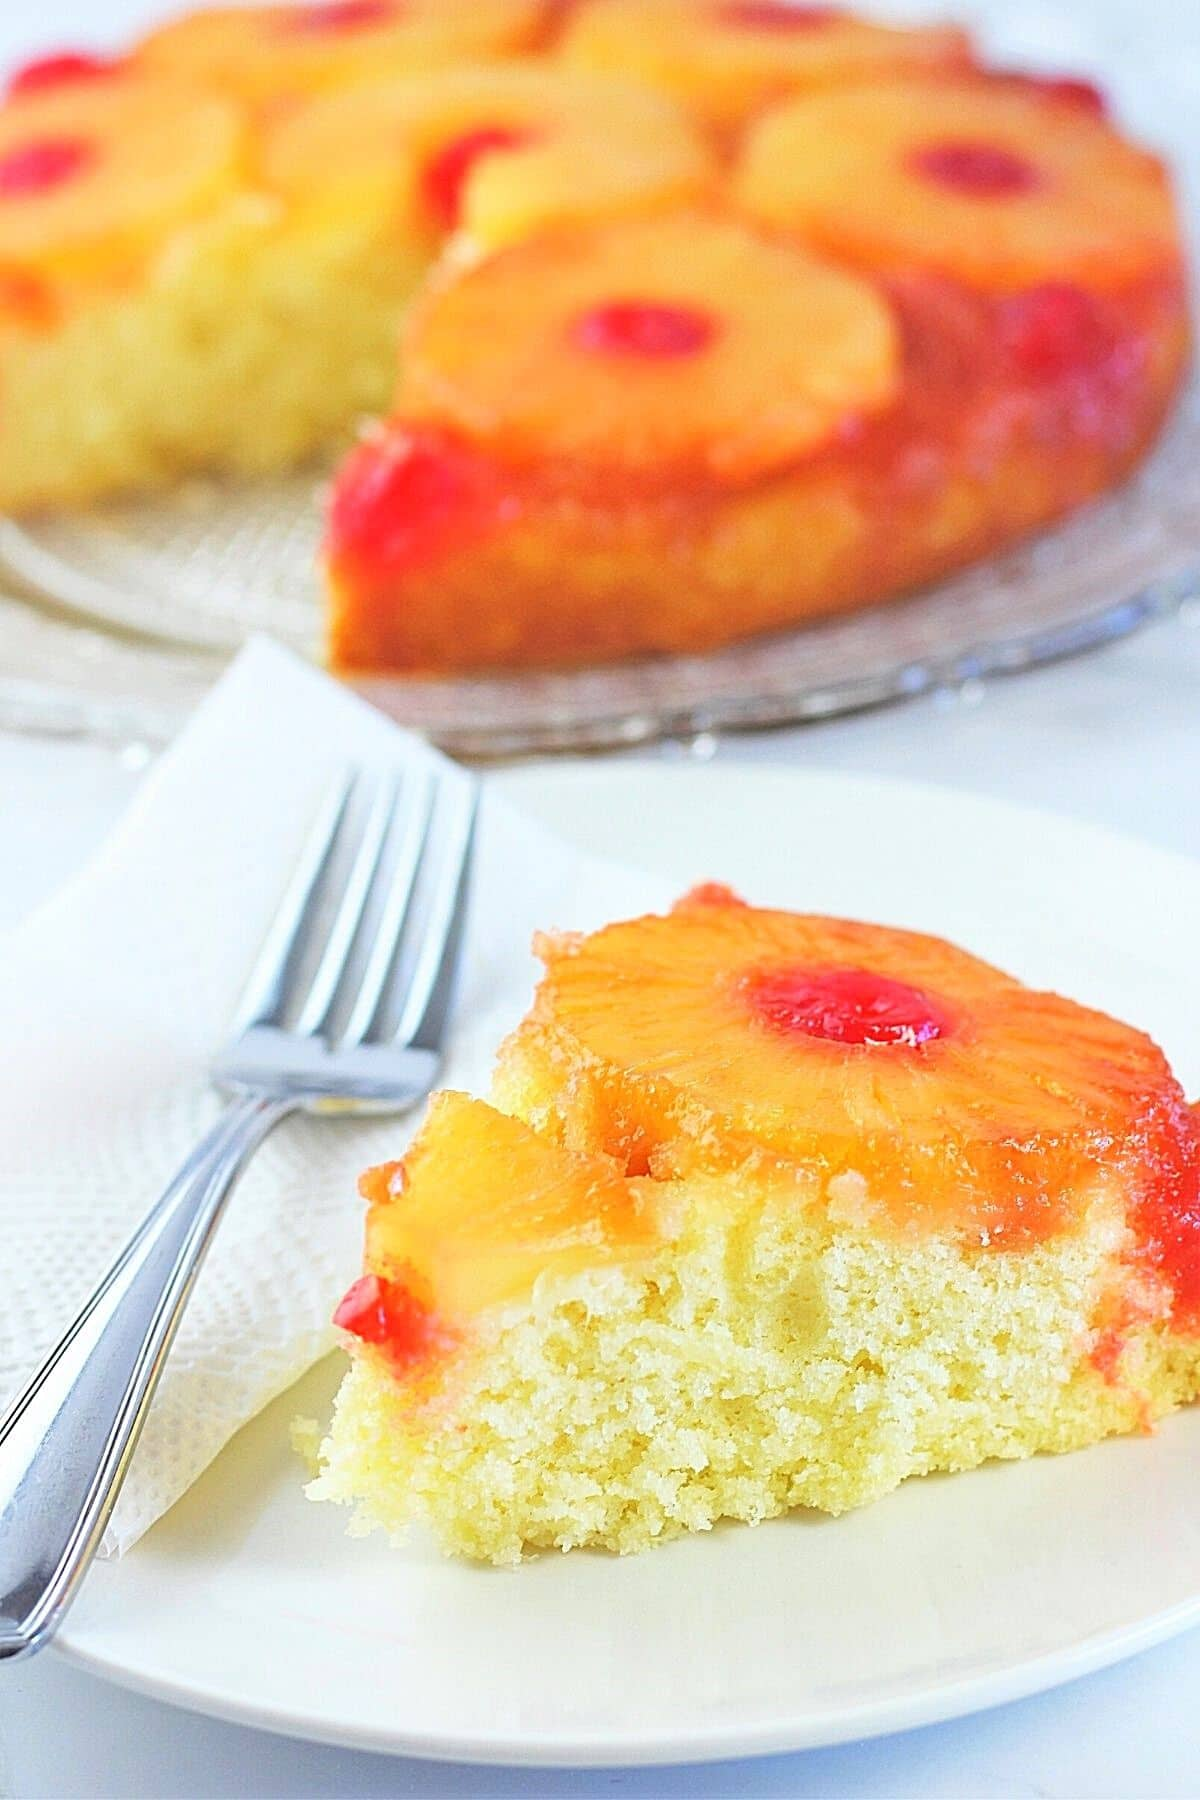 slice of pineapple upside-down cake on a white plate with a napkin and fork with the whole cake in the background